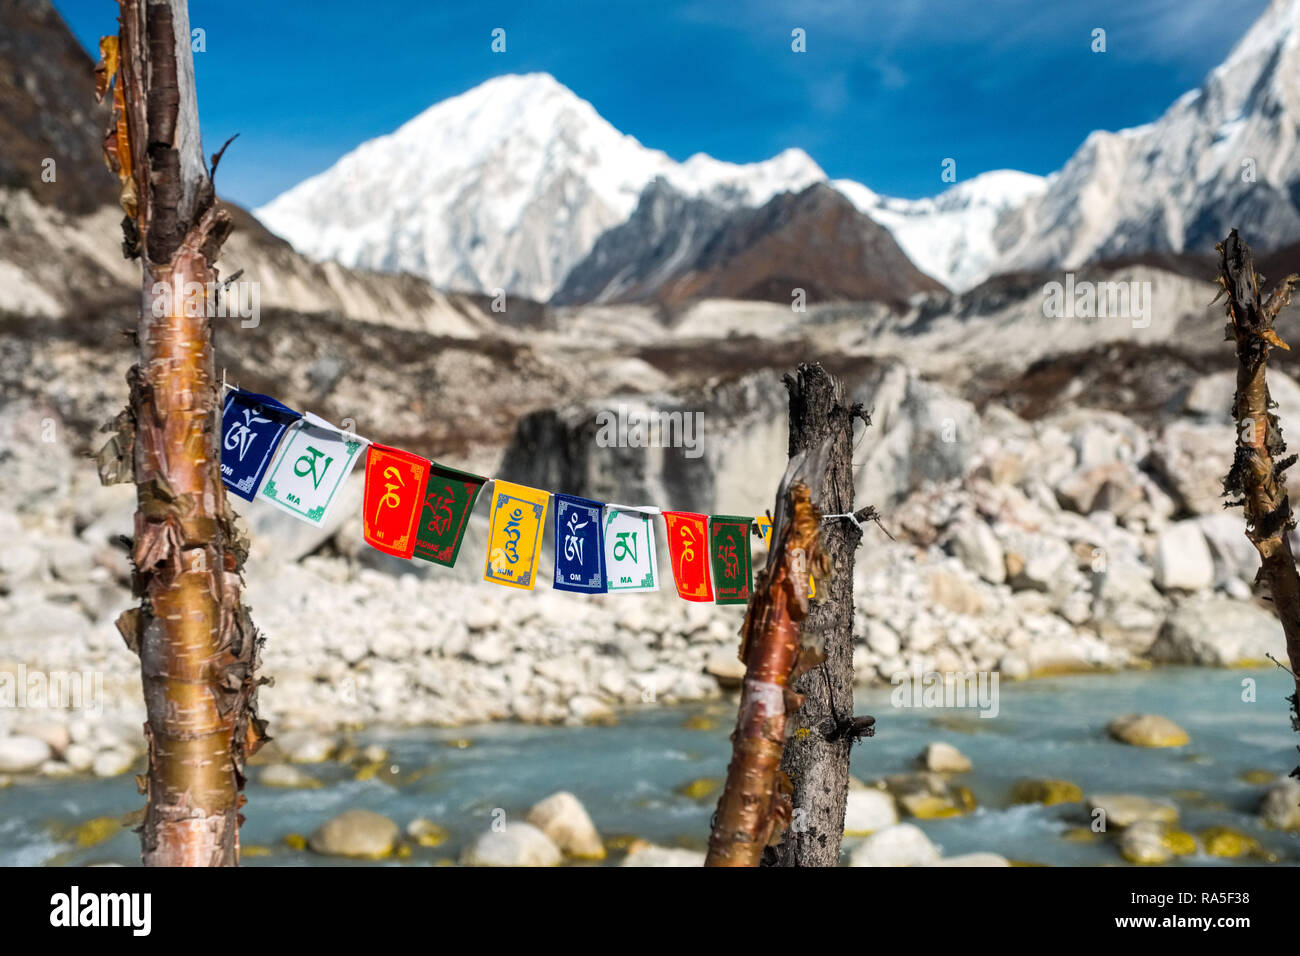 Prayer flags with glacial river and snow capped mountains in distance, typical Himalayan scenery on the Annapurna Circuit trek, Nepal - Stock Image